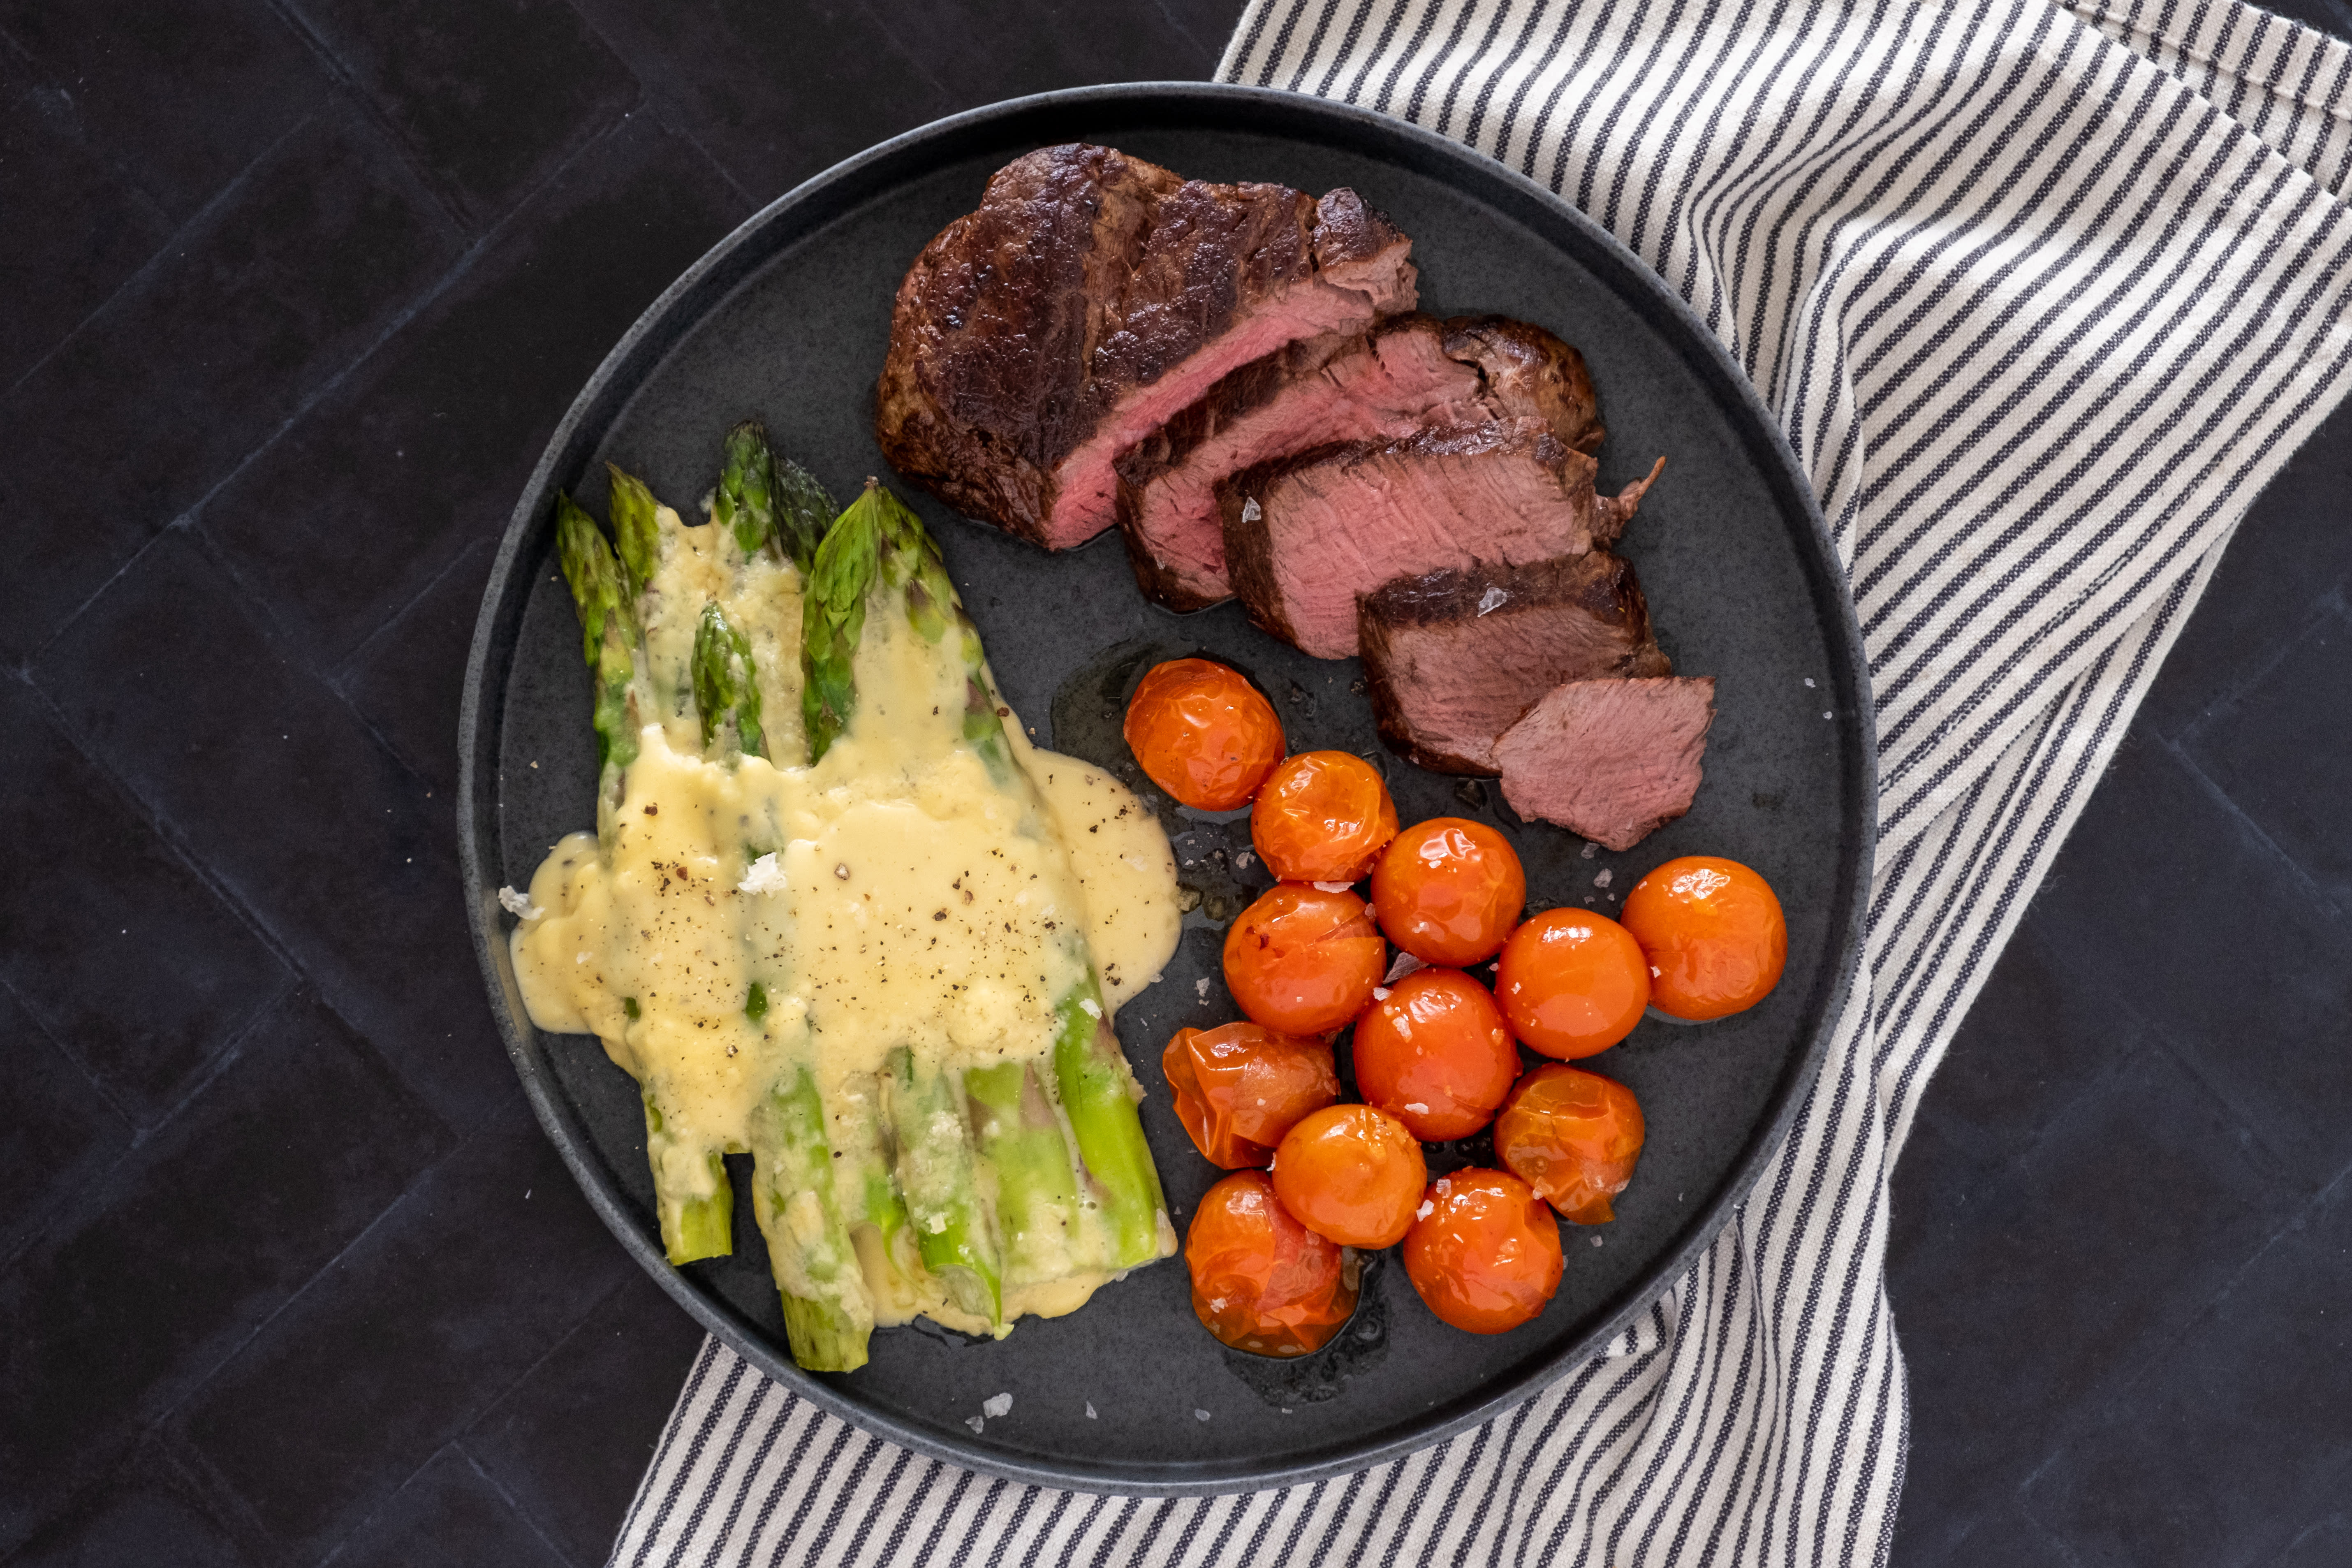 9oz Fillet Steak with Baked Asparagus Cheese and Cherry Tomatoes